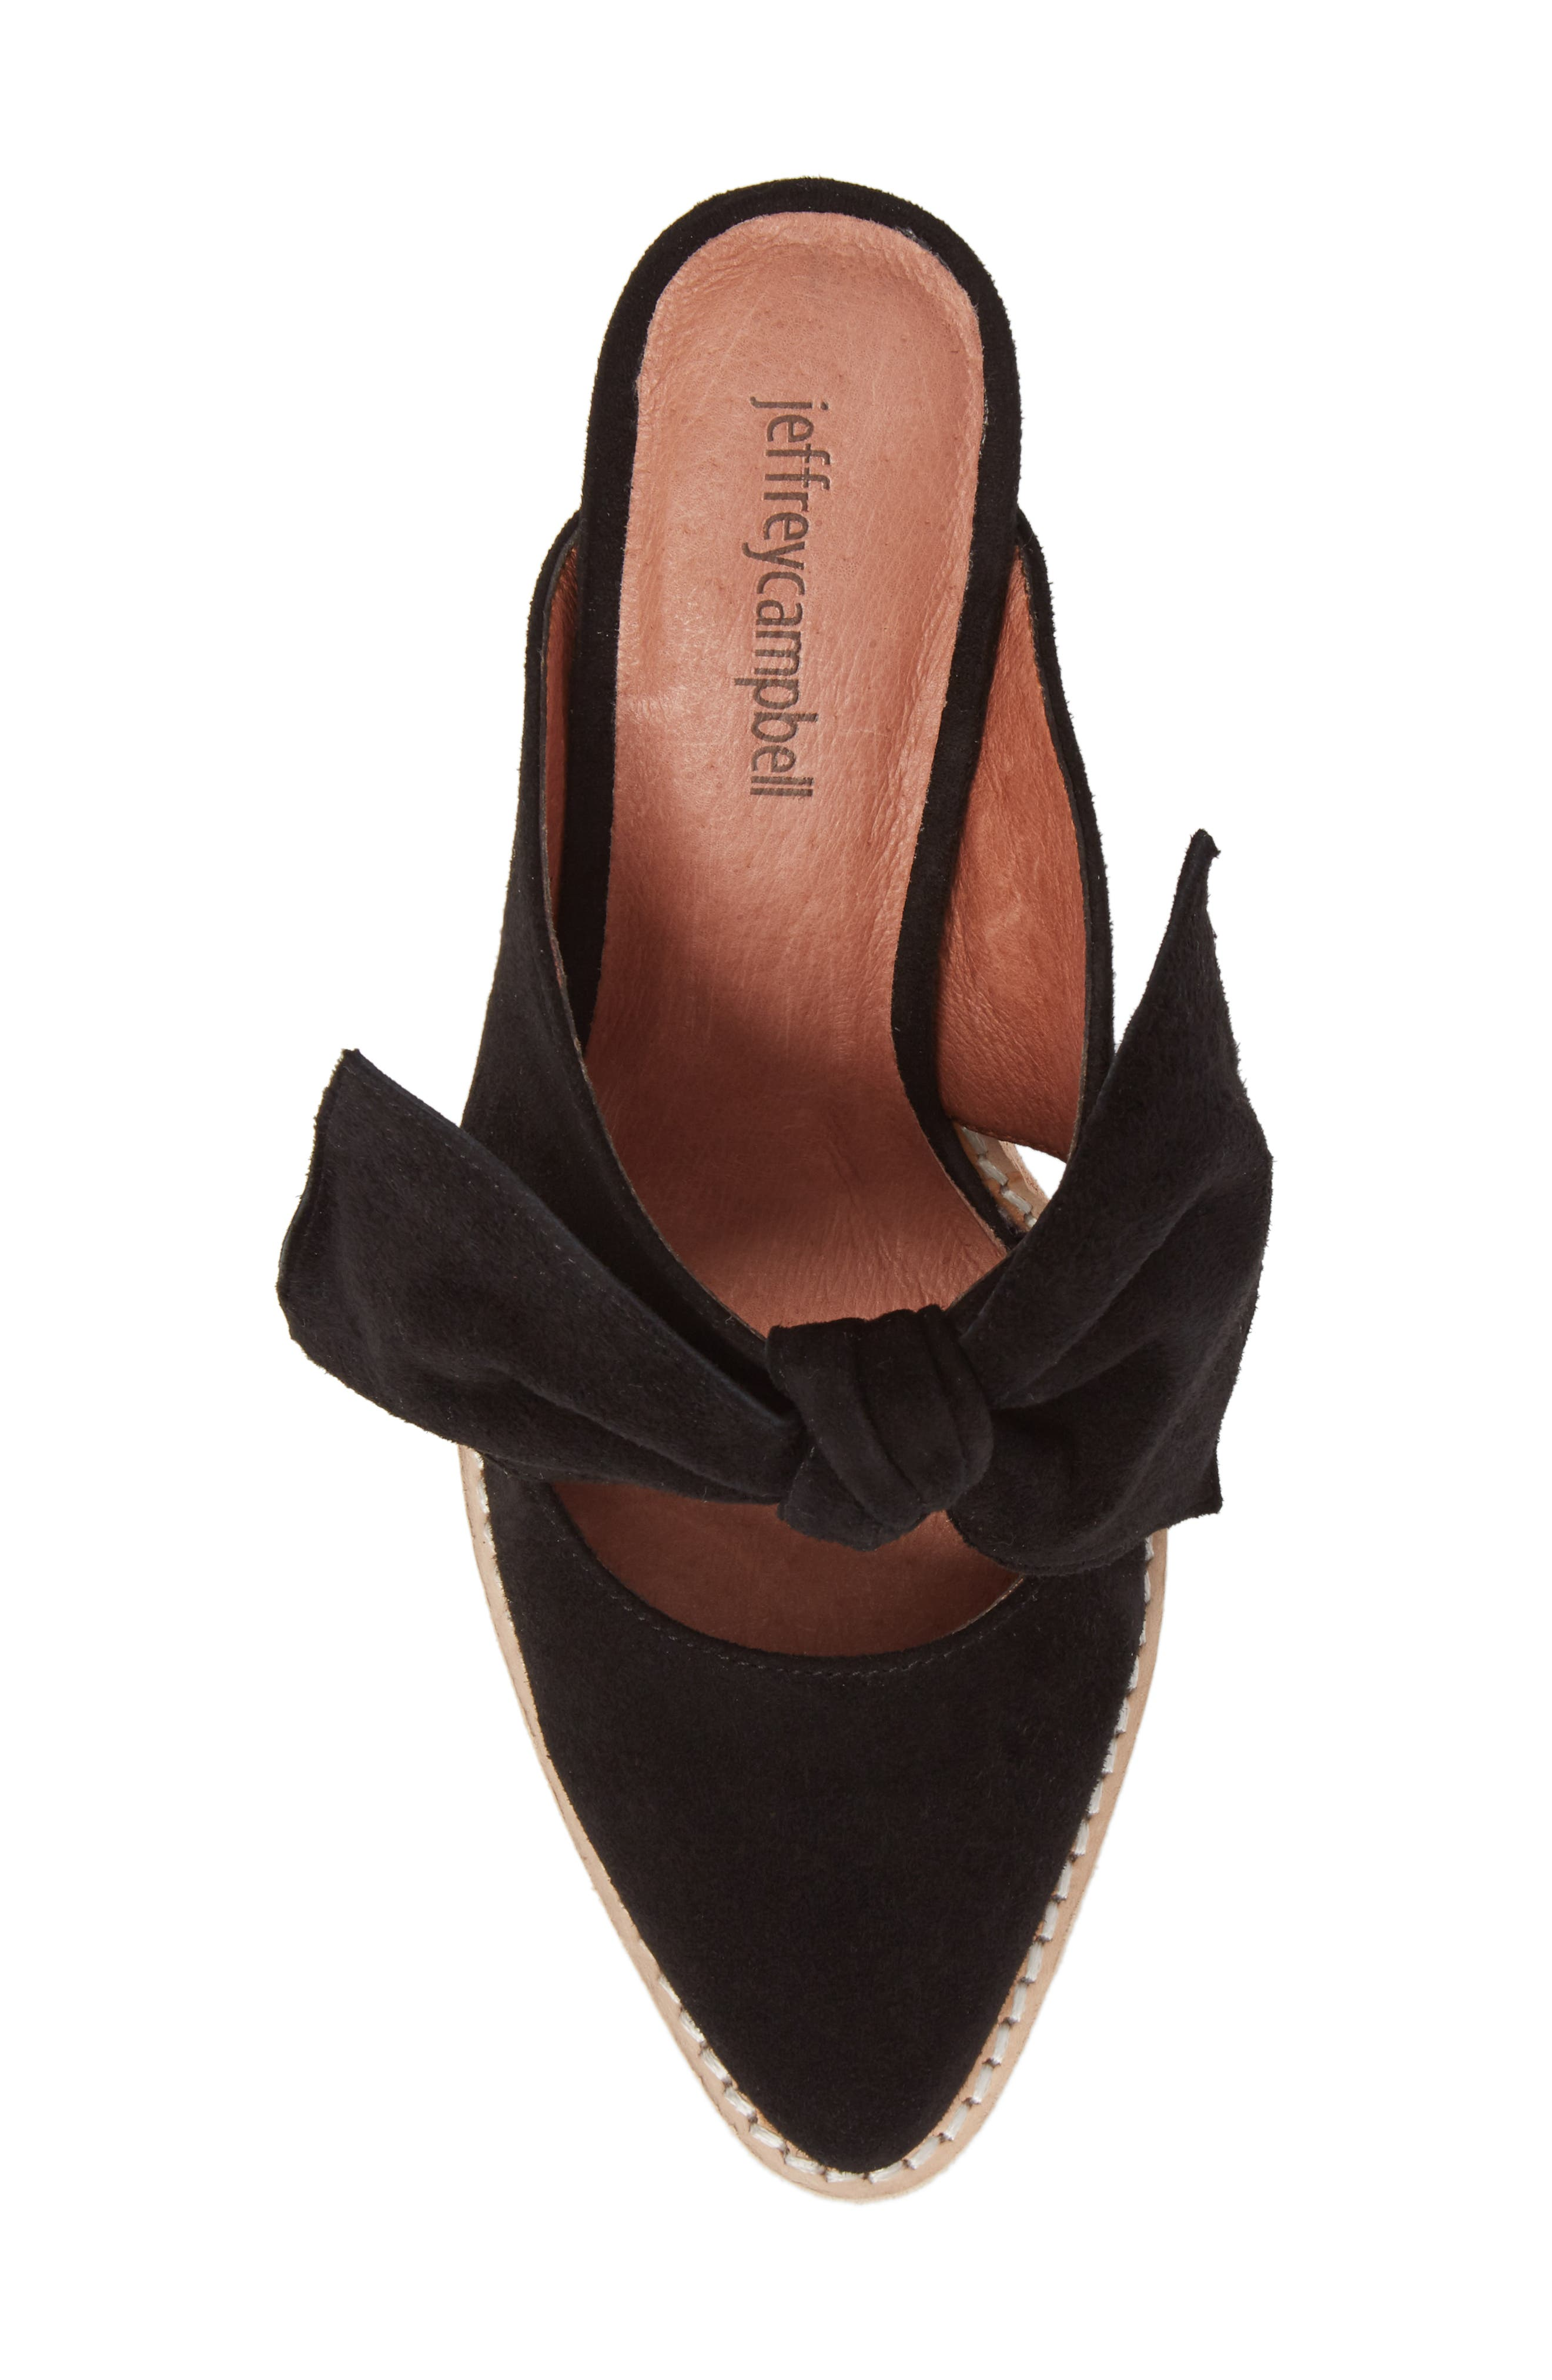 JEFFREY CAMPBELL,                             Cyrus Knotted Mary Jane Mule,                             Alternate thumbnail 5, color,                             001